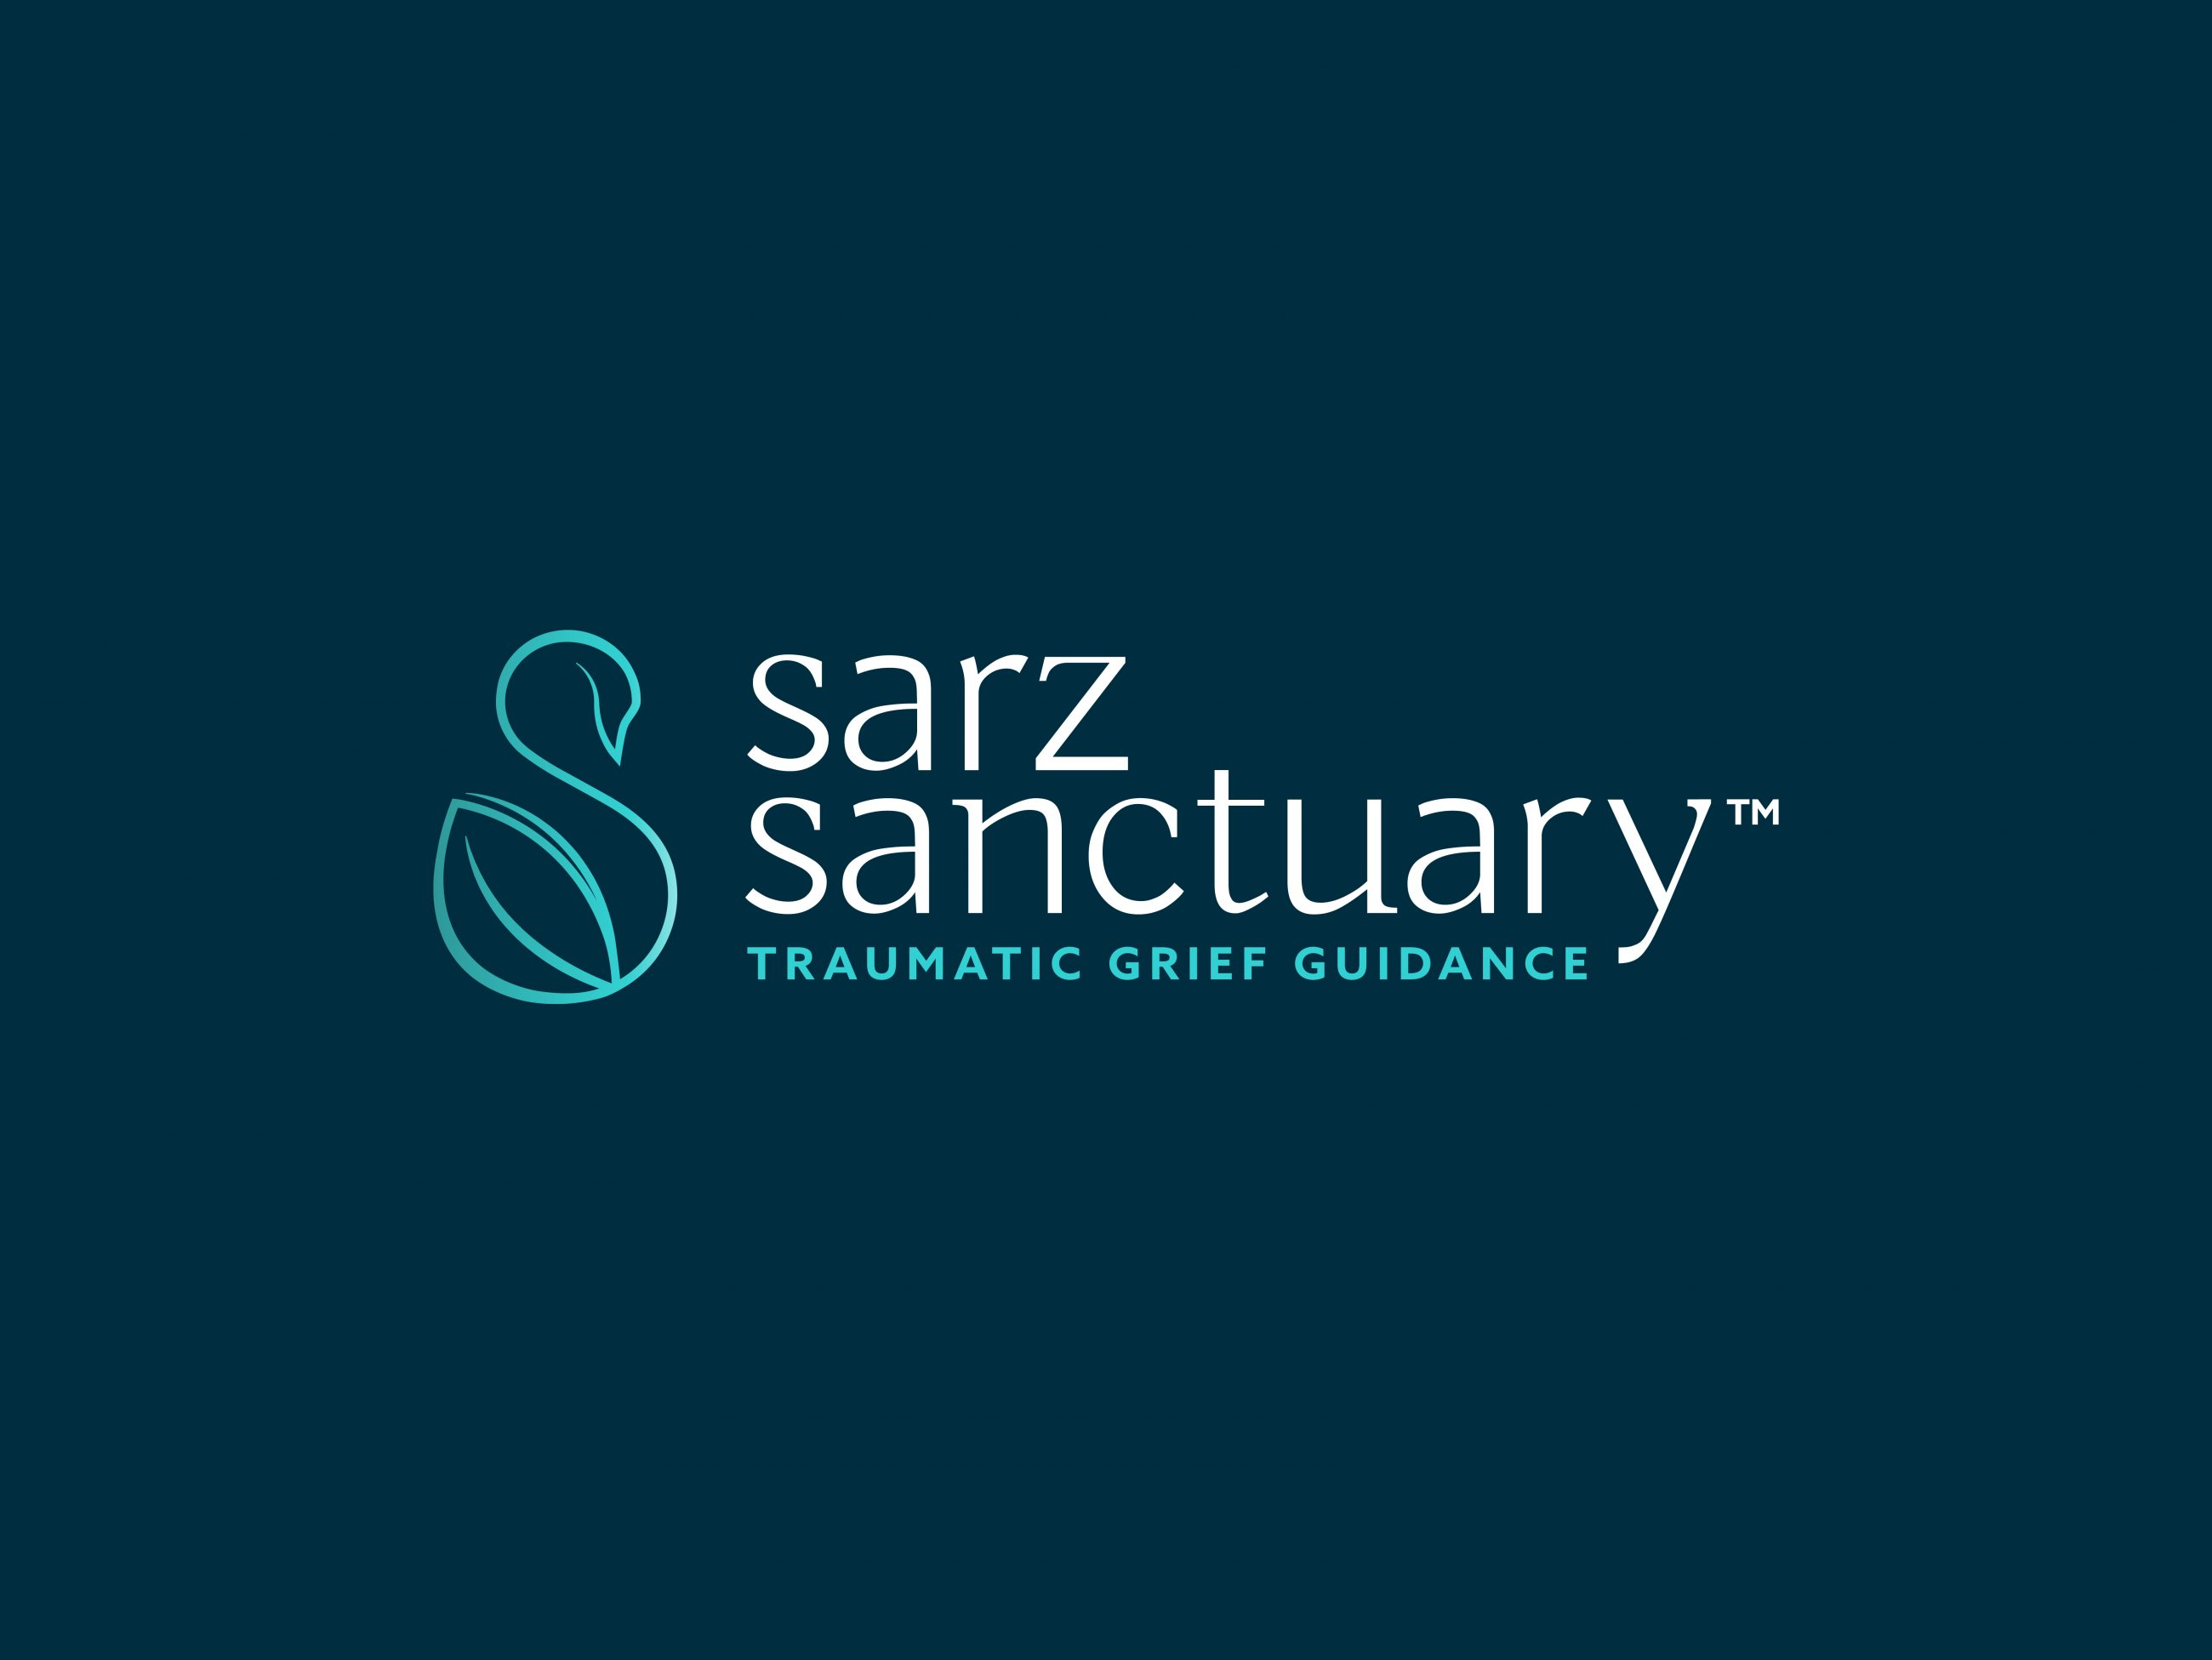 Brand identity design for not-for-profit brand Sarz Sanctuary, providing traumatic grief guidance